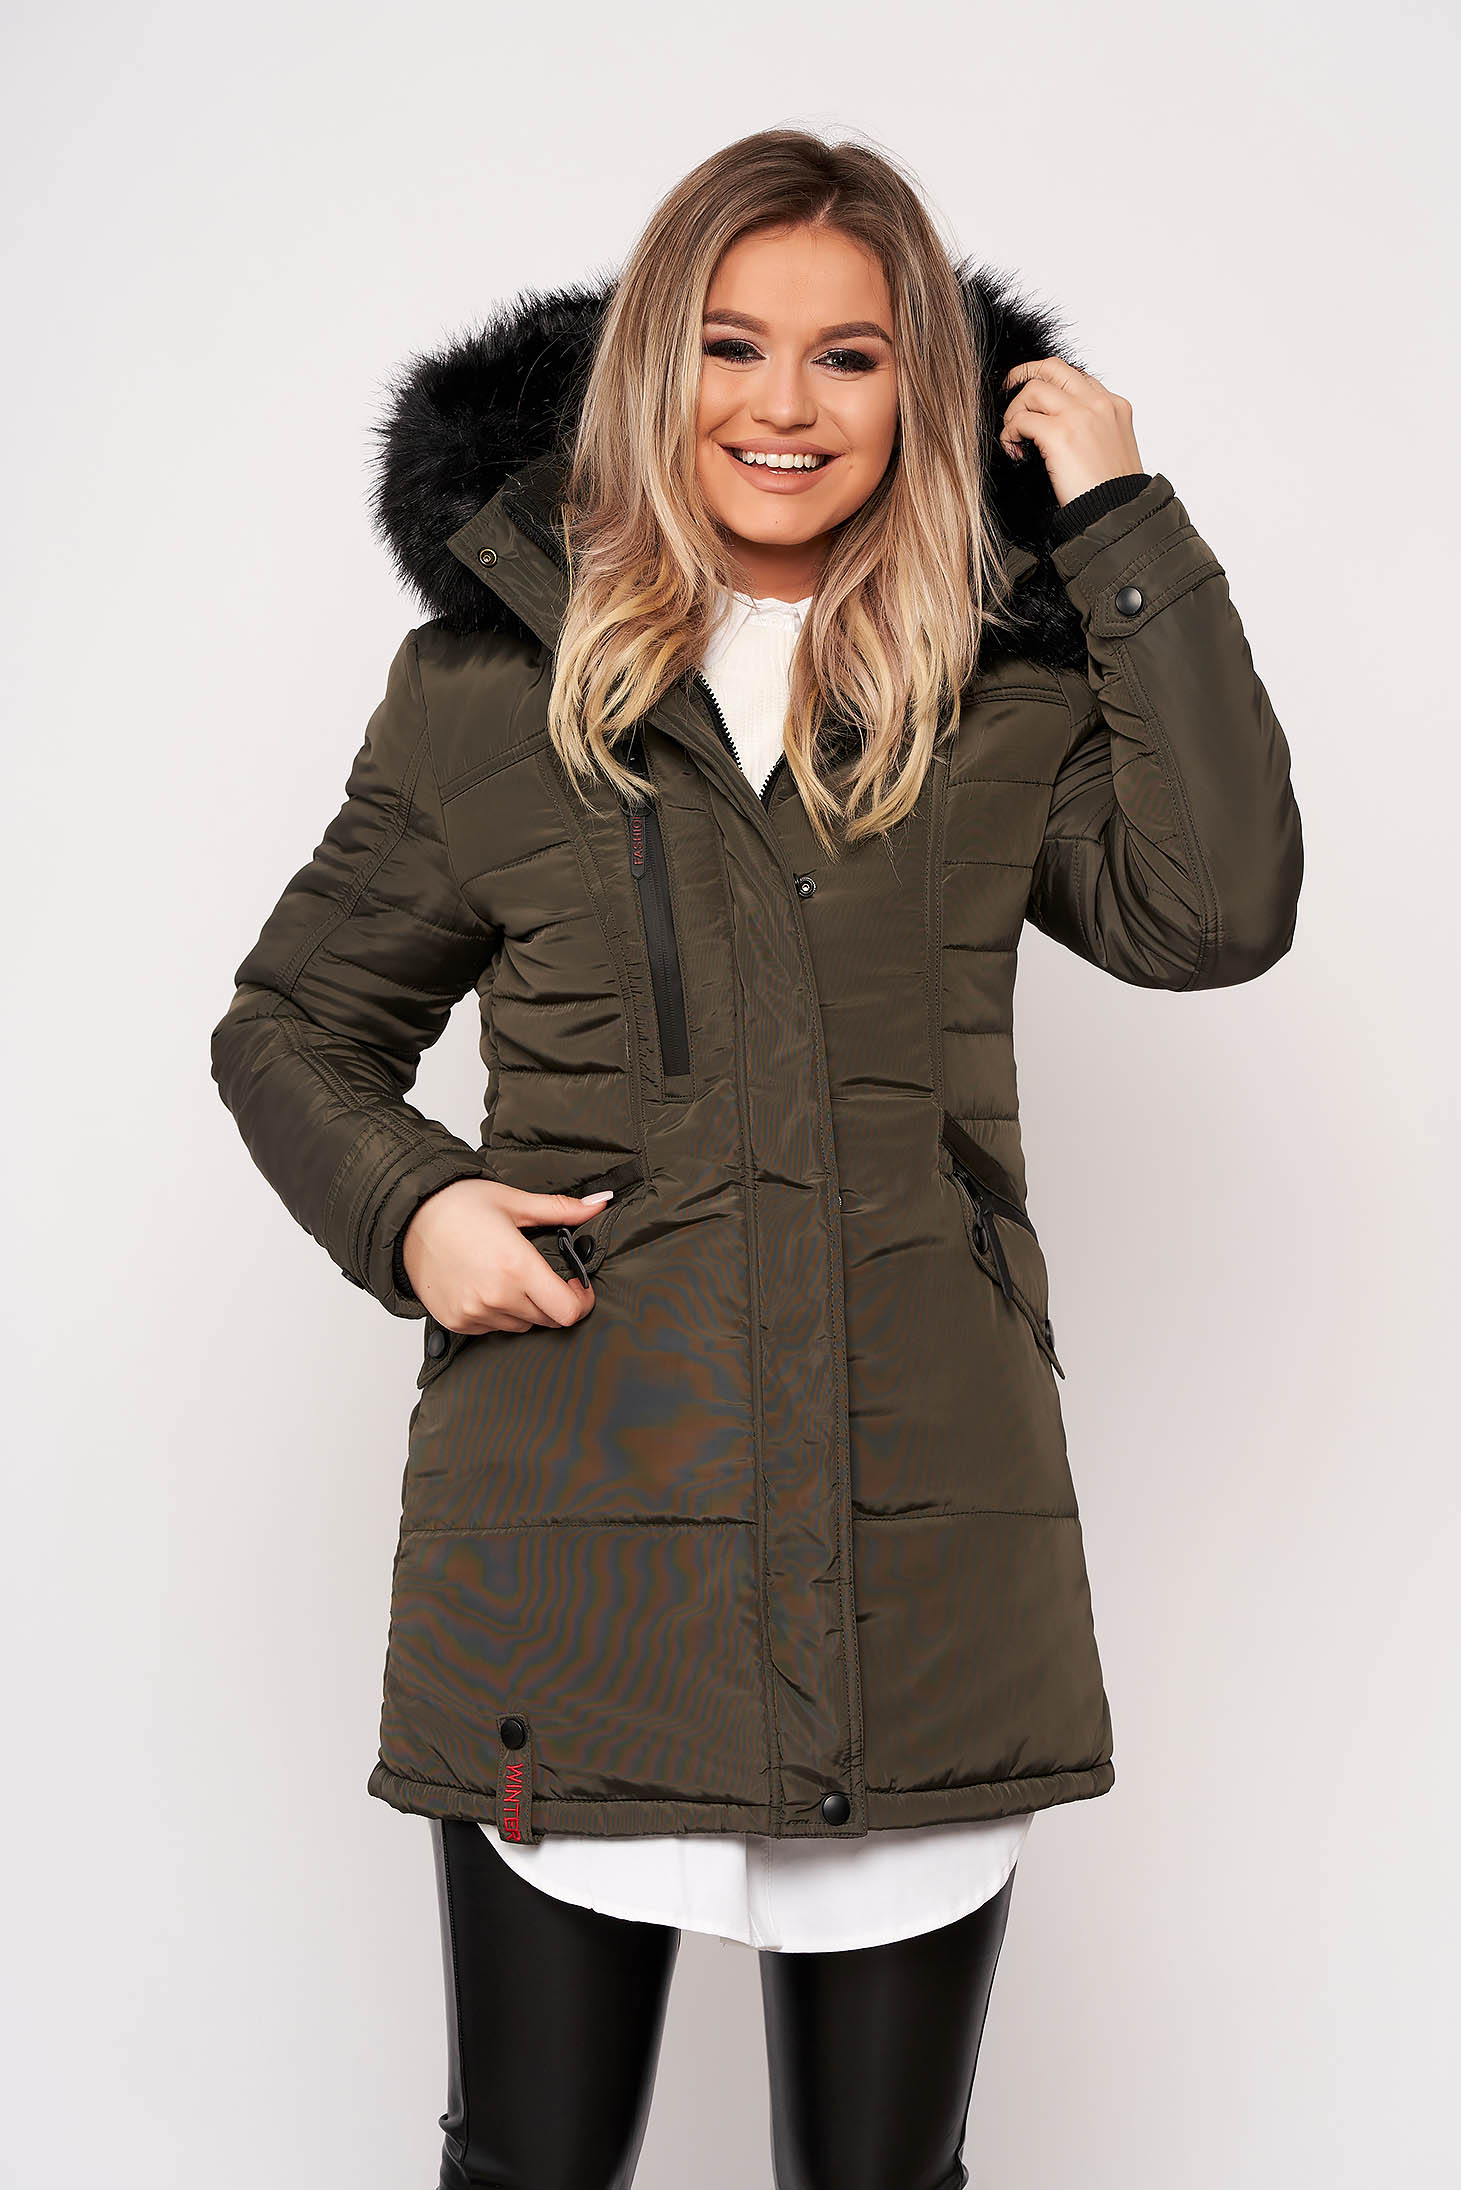 Khaki jacket casual midi from slicker with pockets detachable hood with furry hood